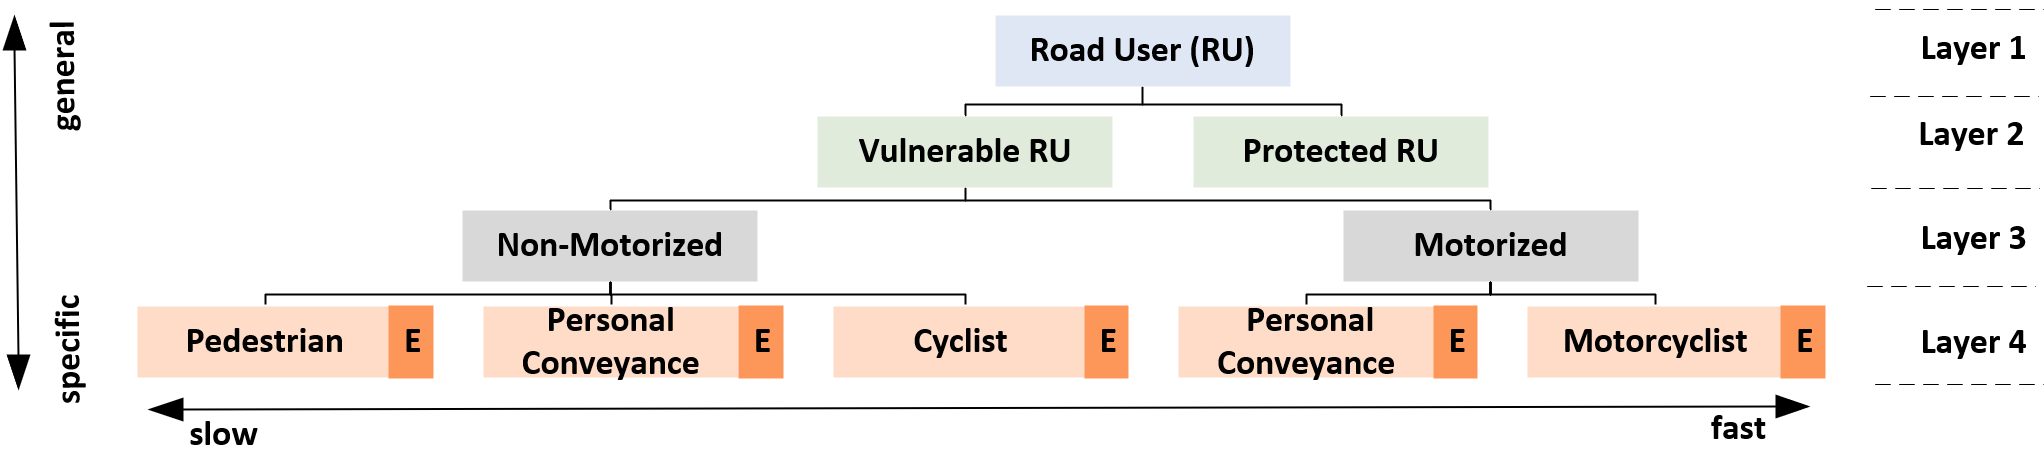 A Taxonomy of Vulnerable Road Users for HCI Based On A Systematic Literature Review